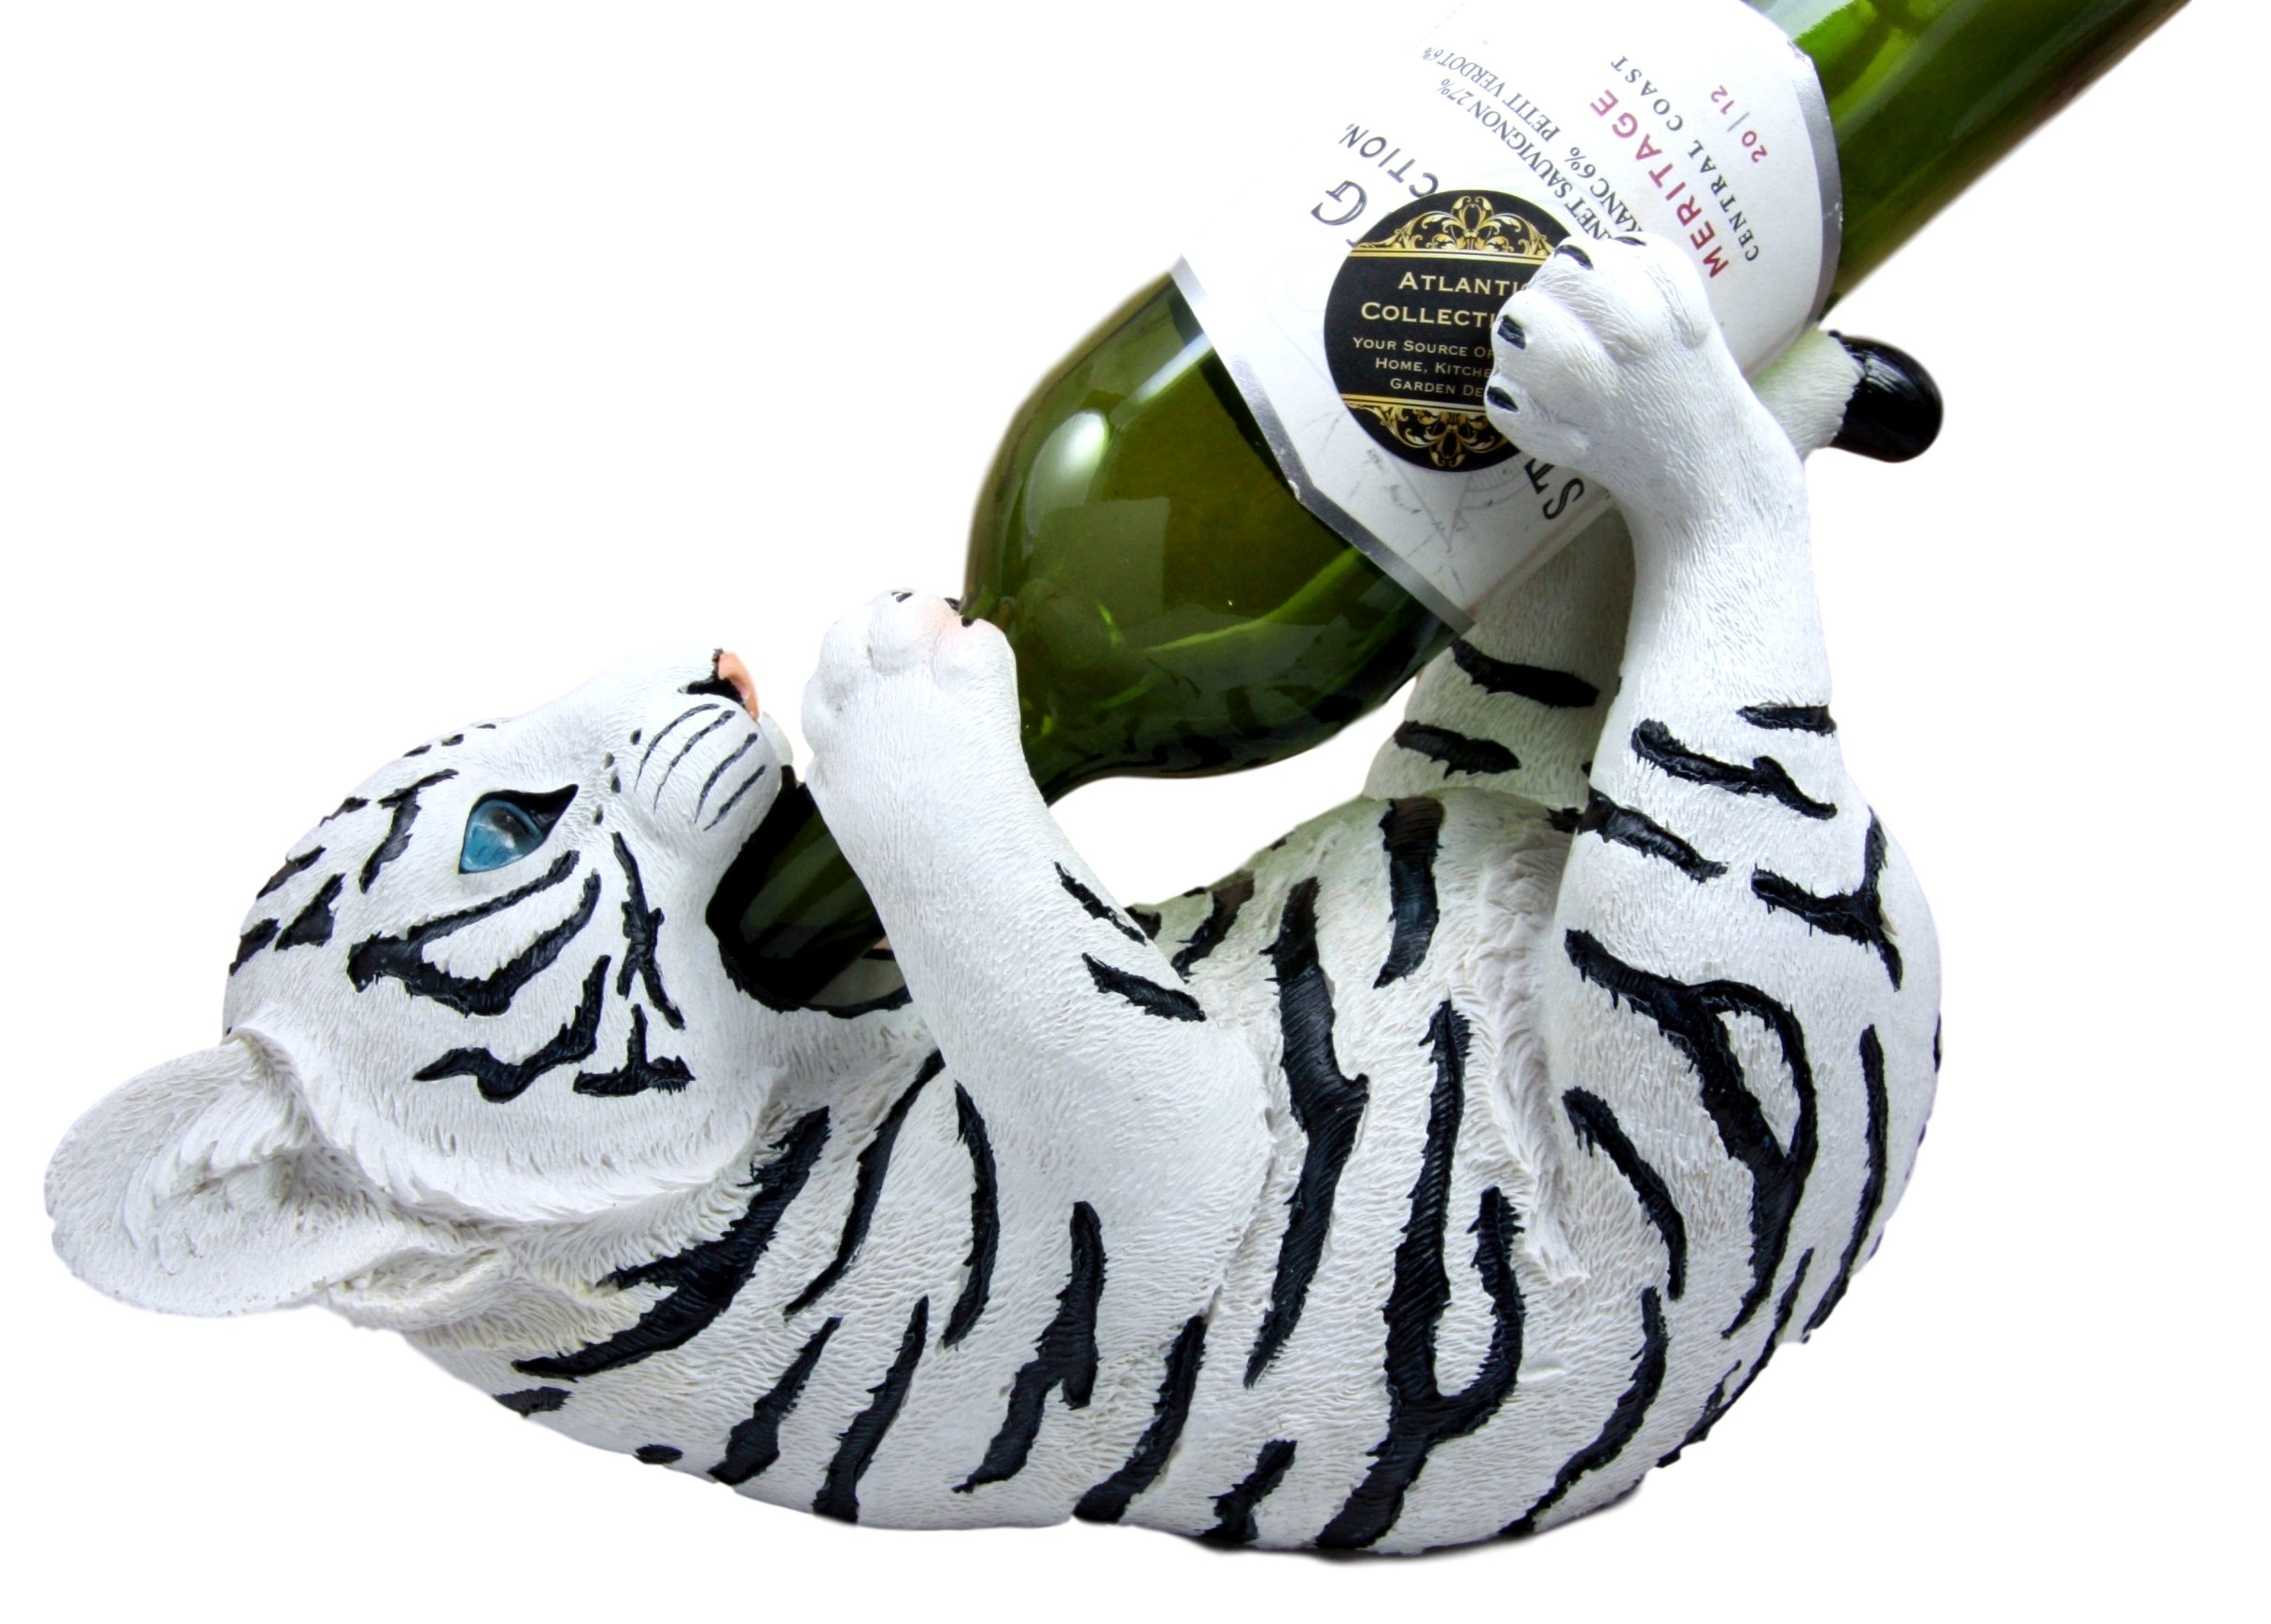 Atlantic Collectibles Thirsty Siberian White Tiger Wine Oil Bottle Holder Figurine 11''Long